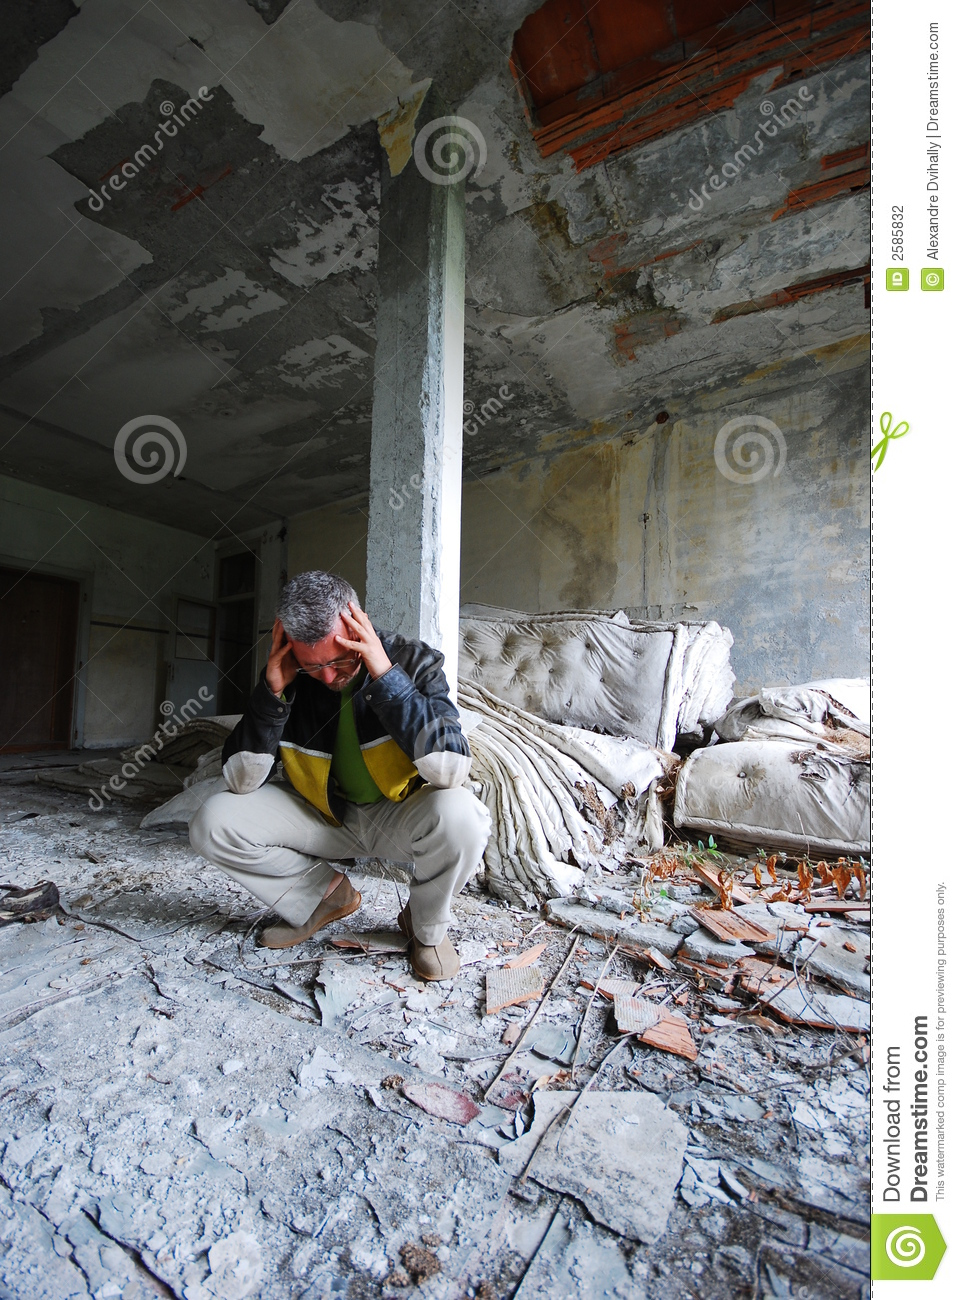 Man In Old Abandoned Building Stock Photo Image Of Alone